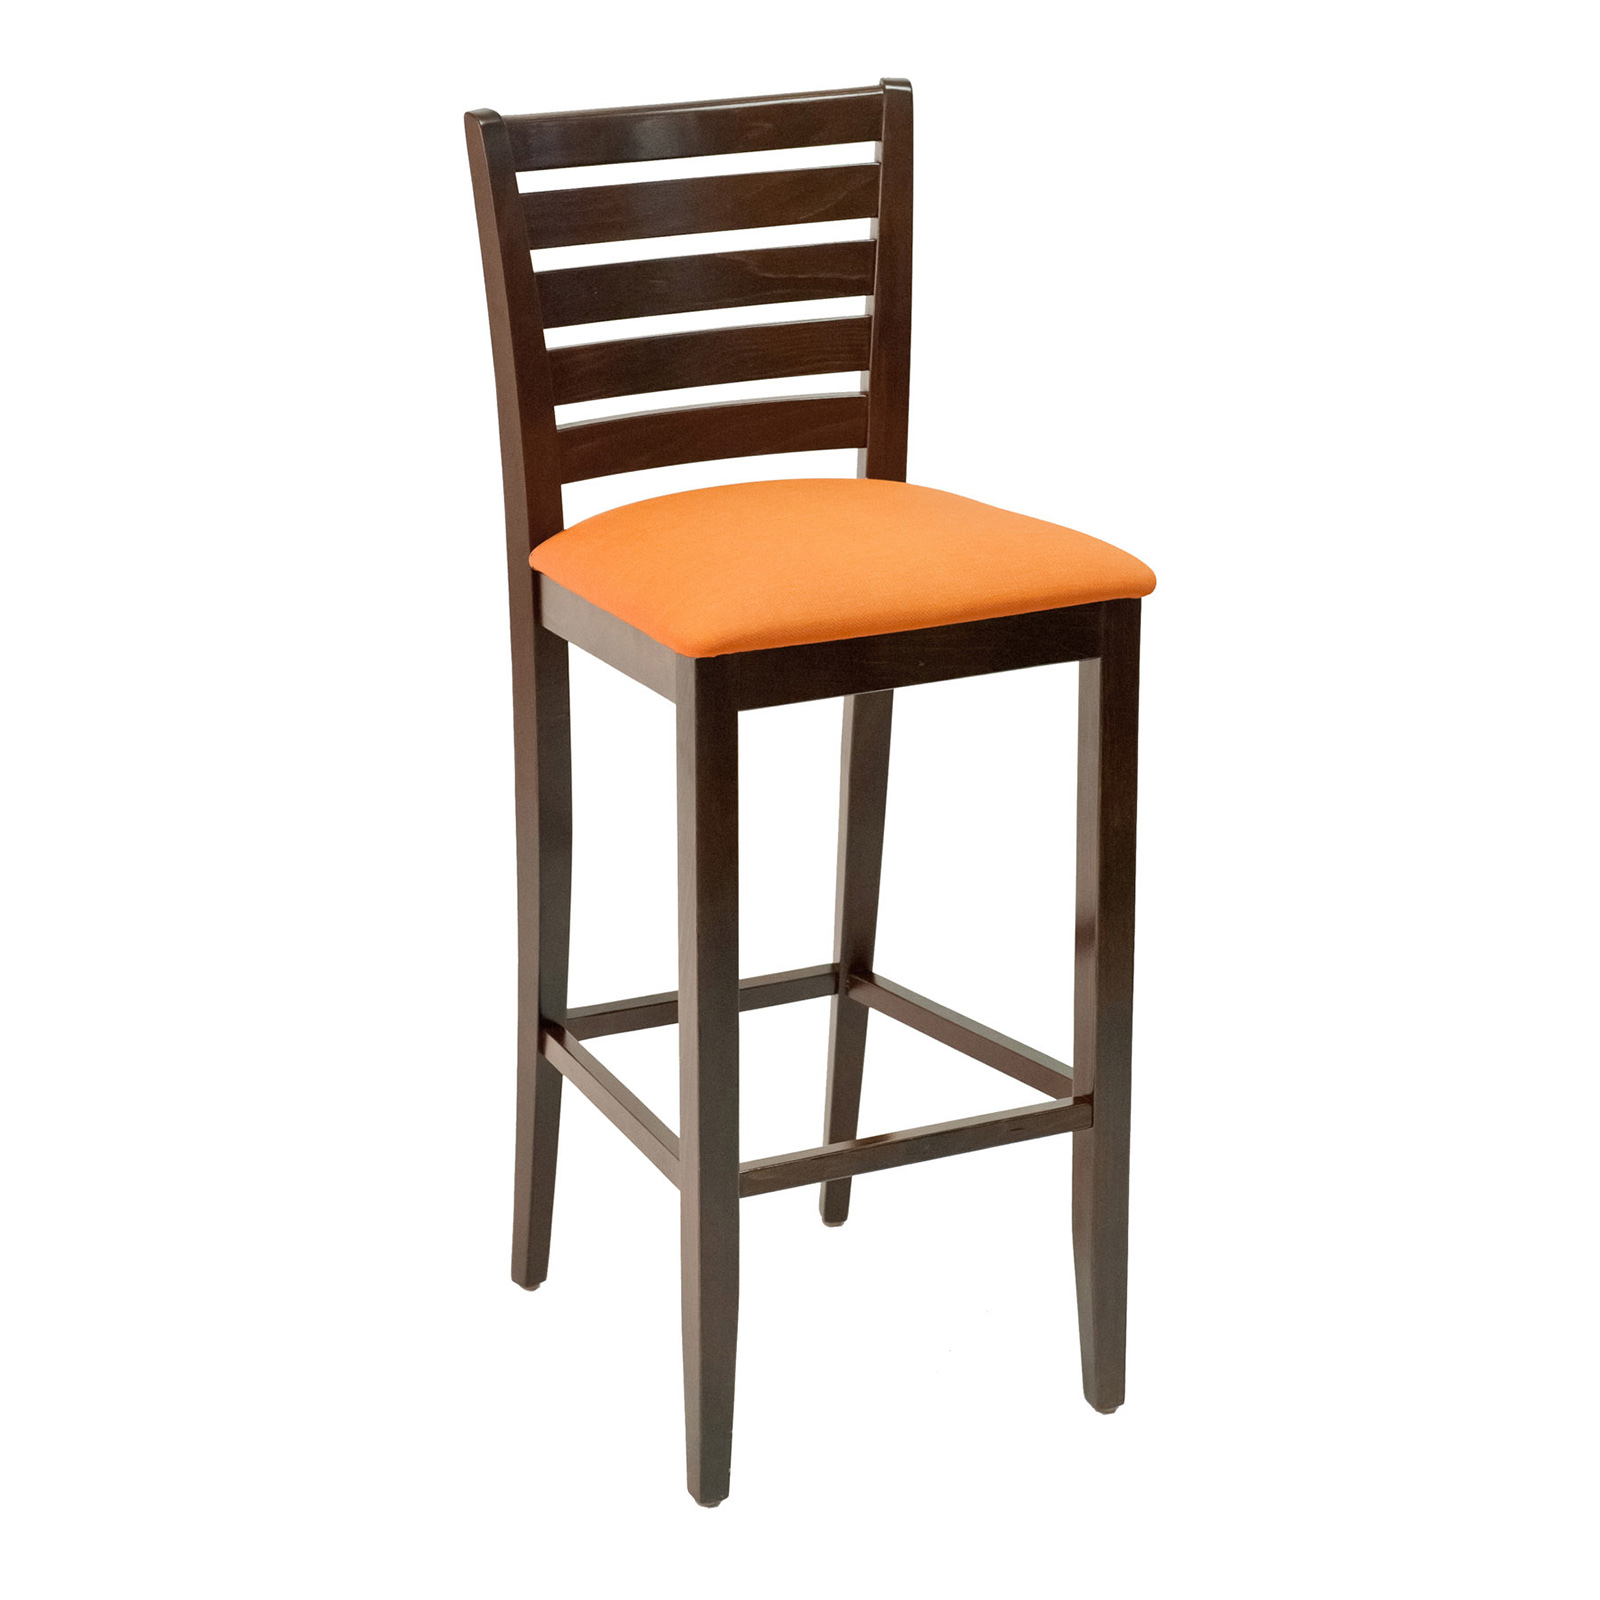 Florida Seating FLS-13B GR3 bar stool, indoor